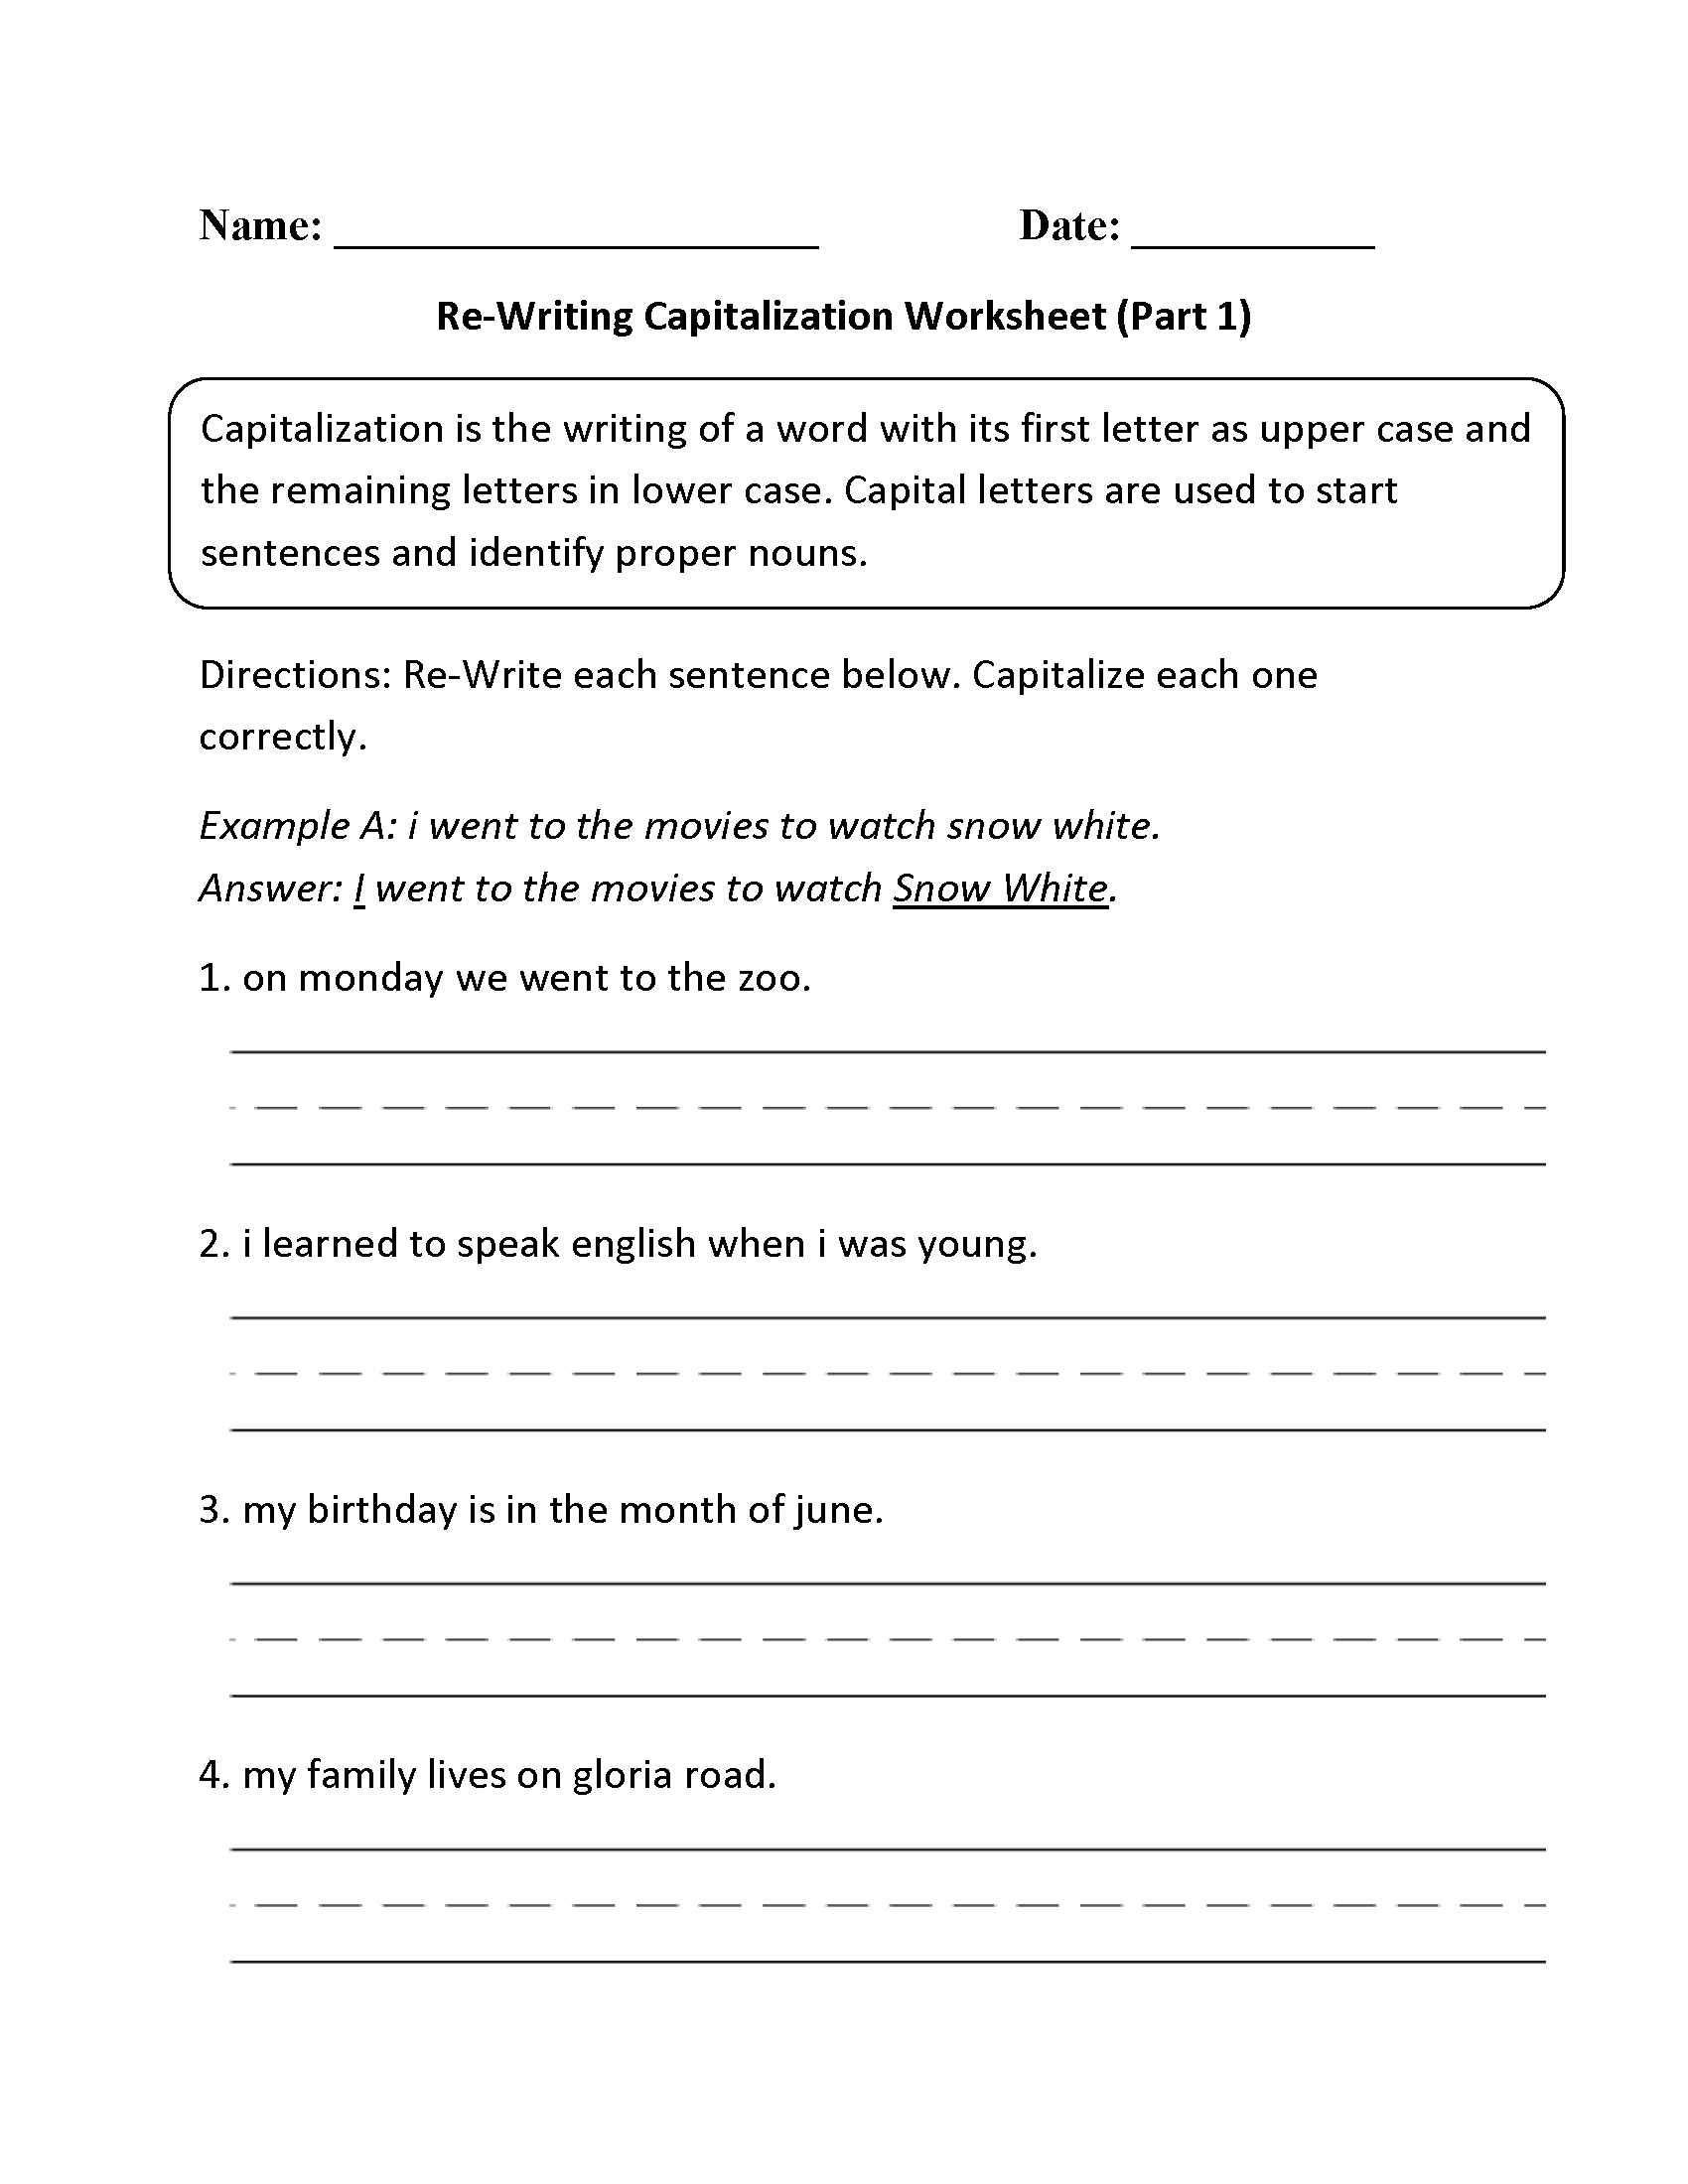 worksheet Capitalization Worksheets 4th Grade englishlinx com capitalization worksheets re writing worksheet part 1